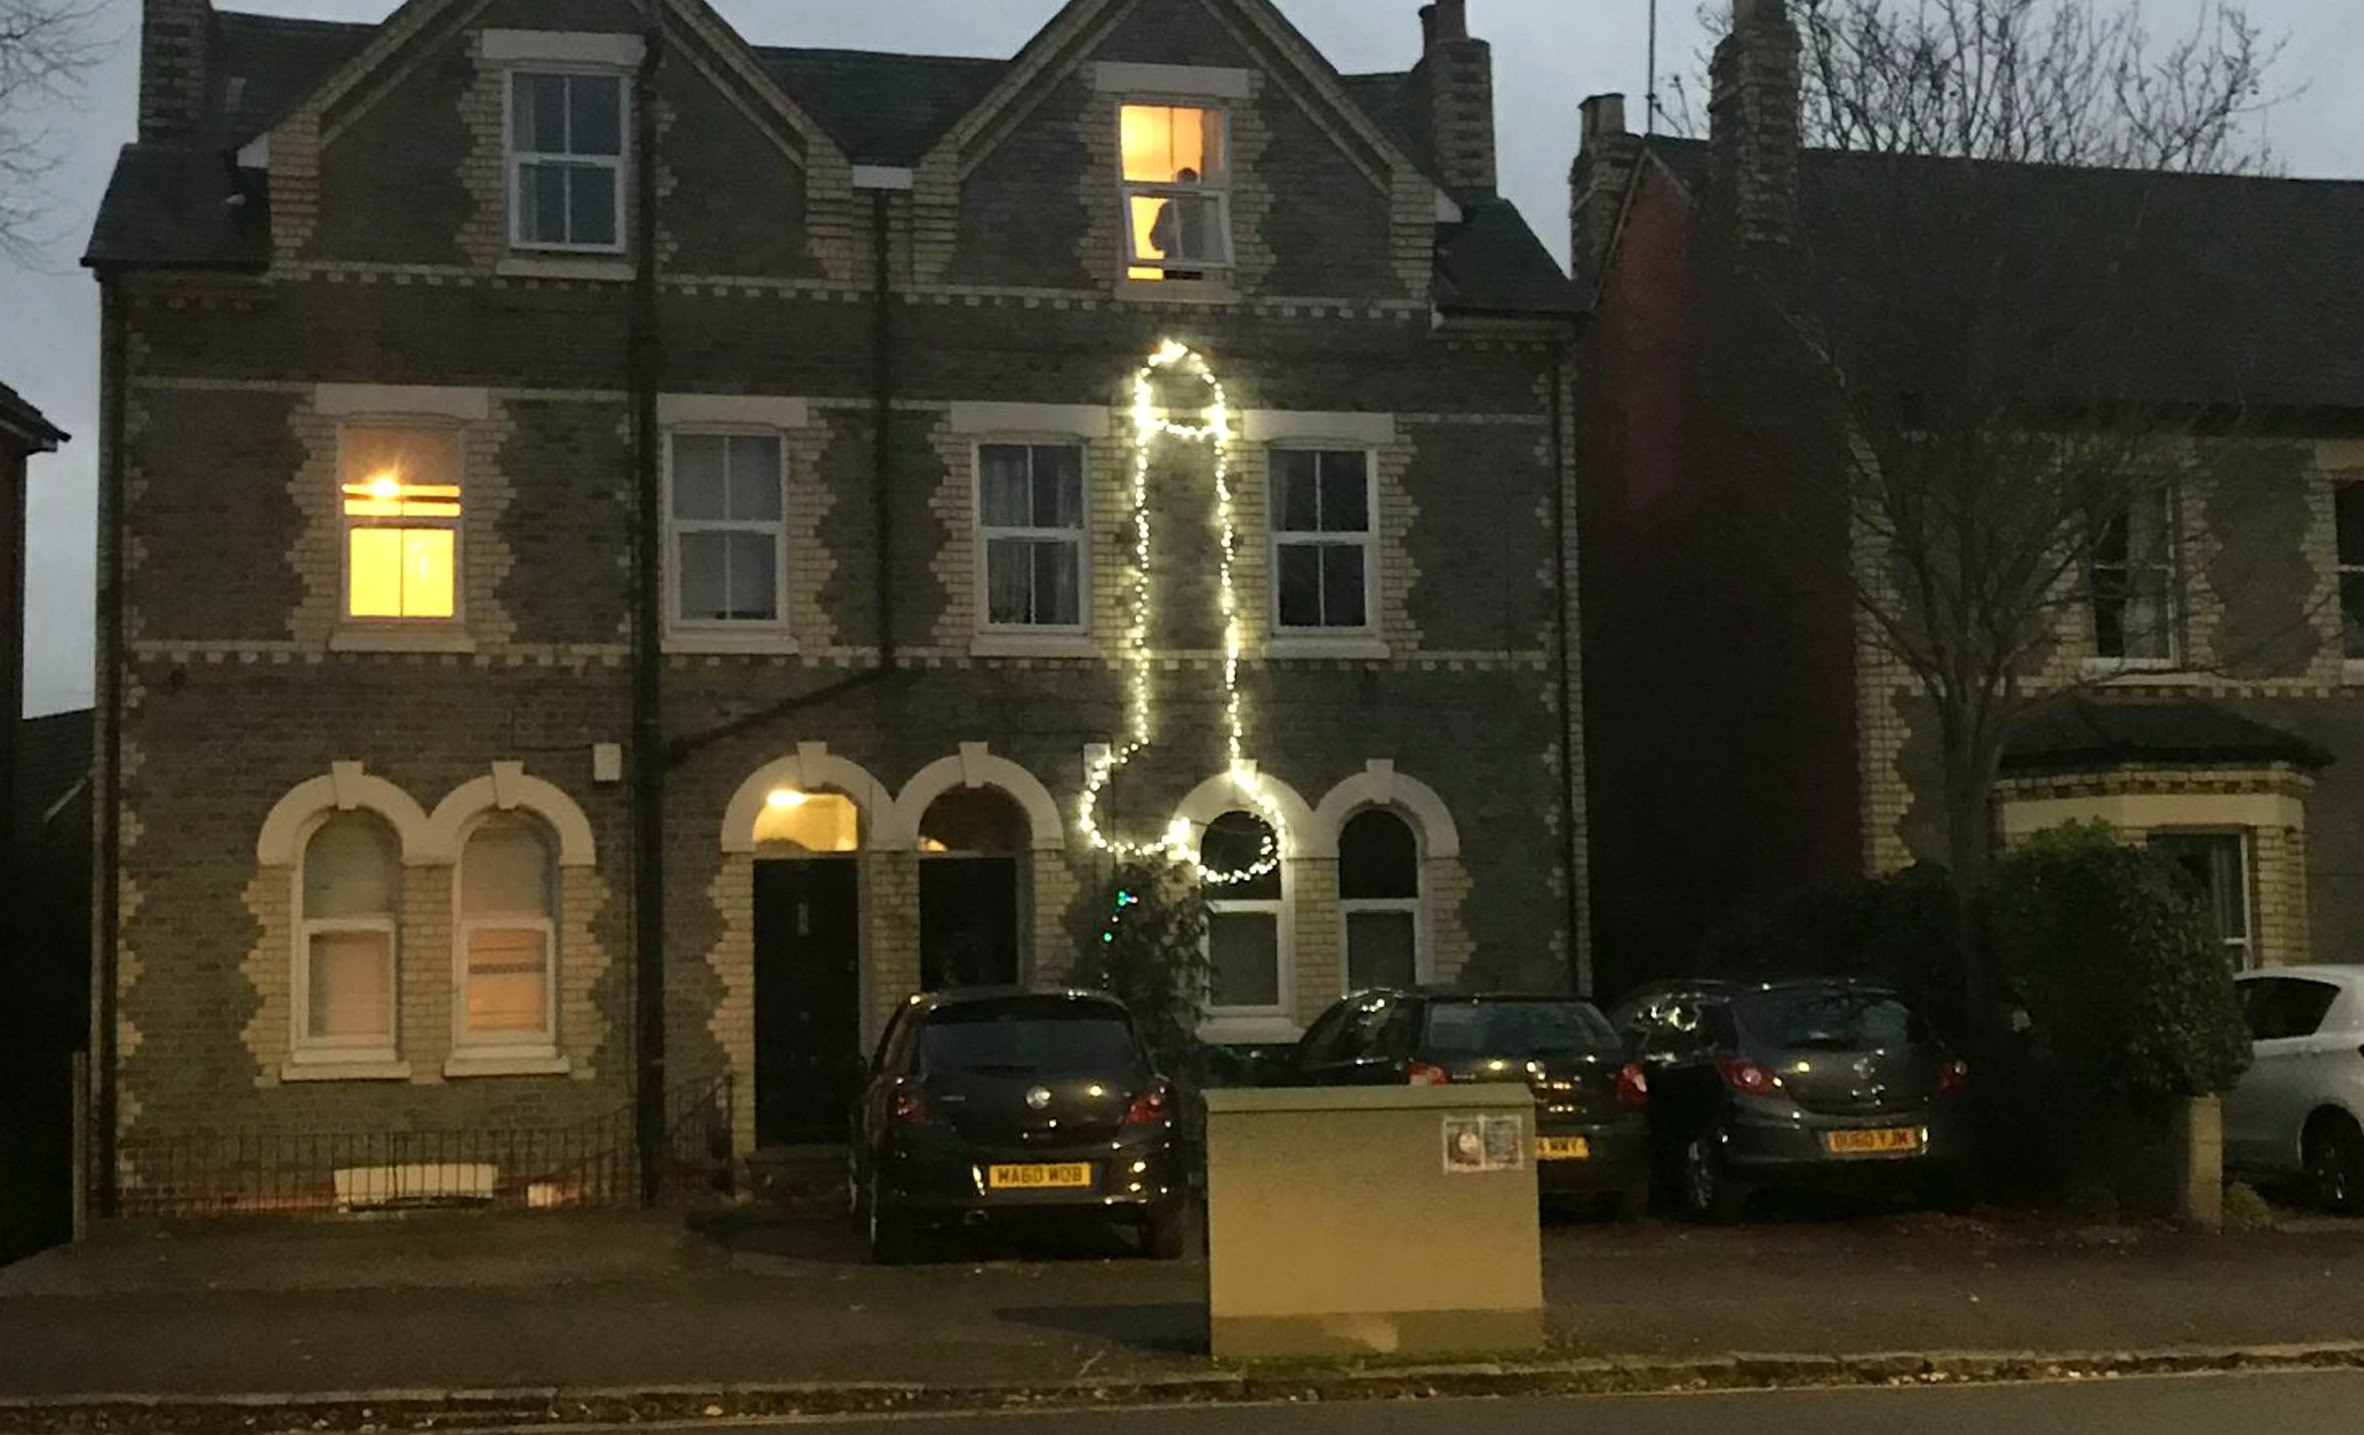 Neighbours shocked by 'deeply offensive' penis-shaped Christmas lights